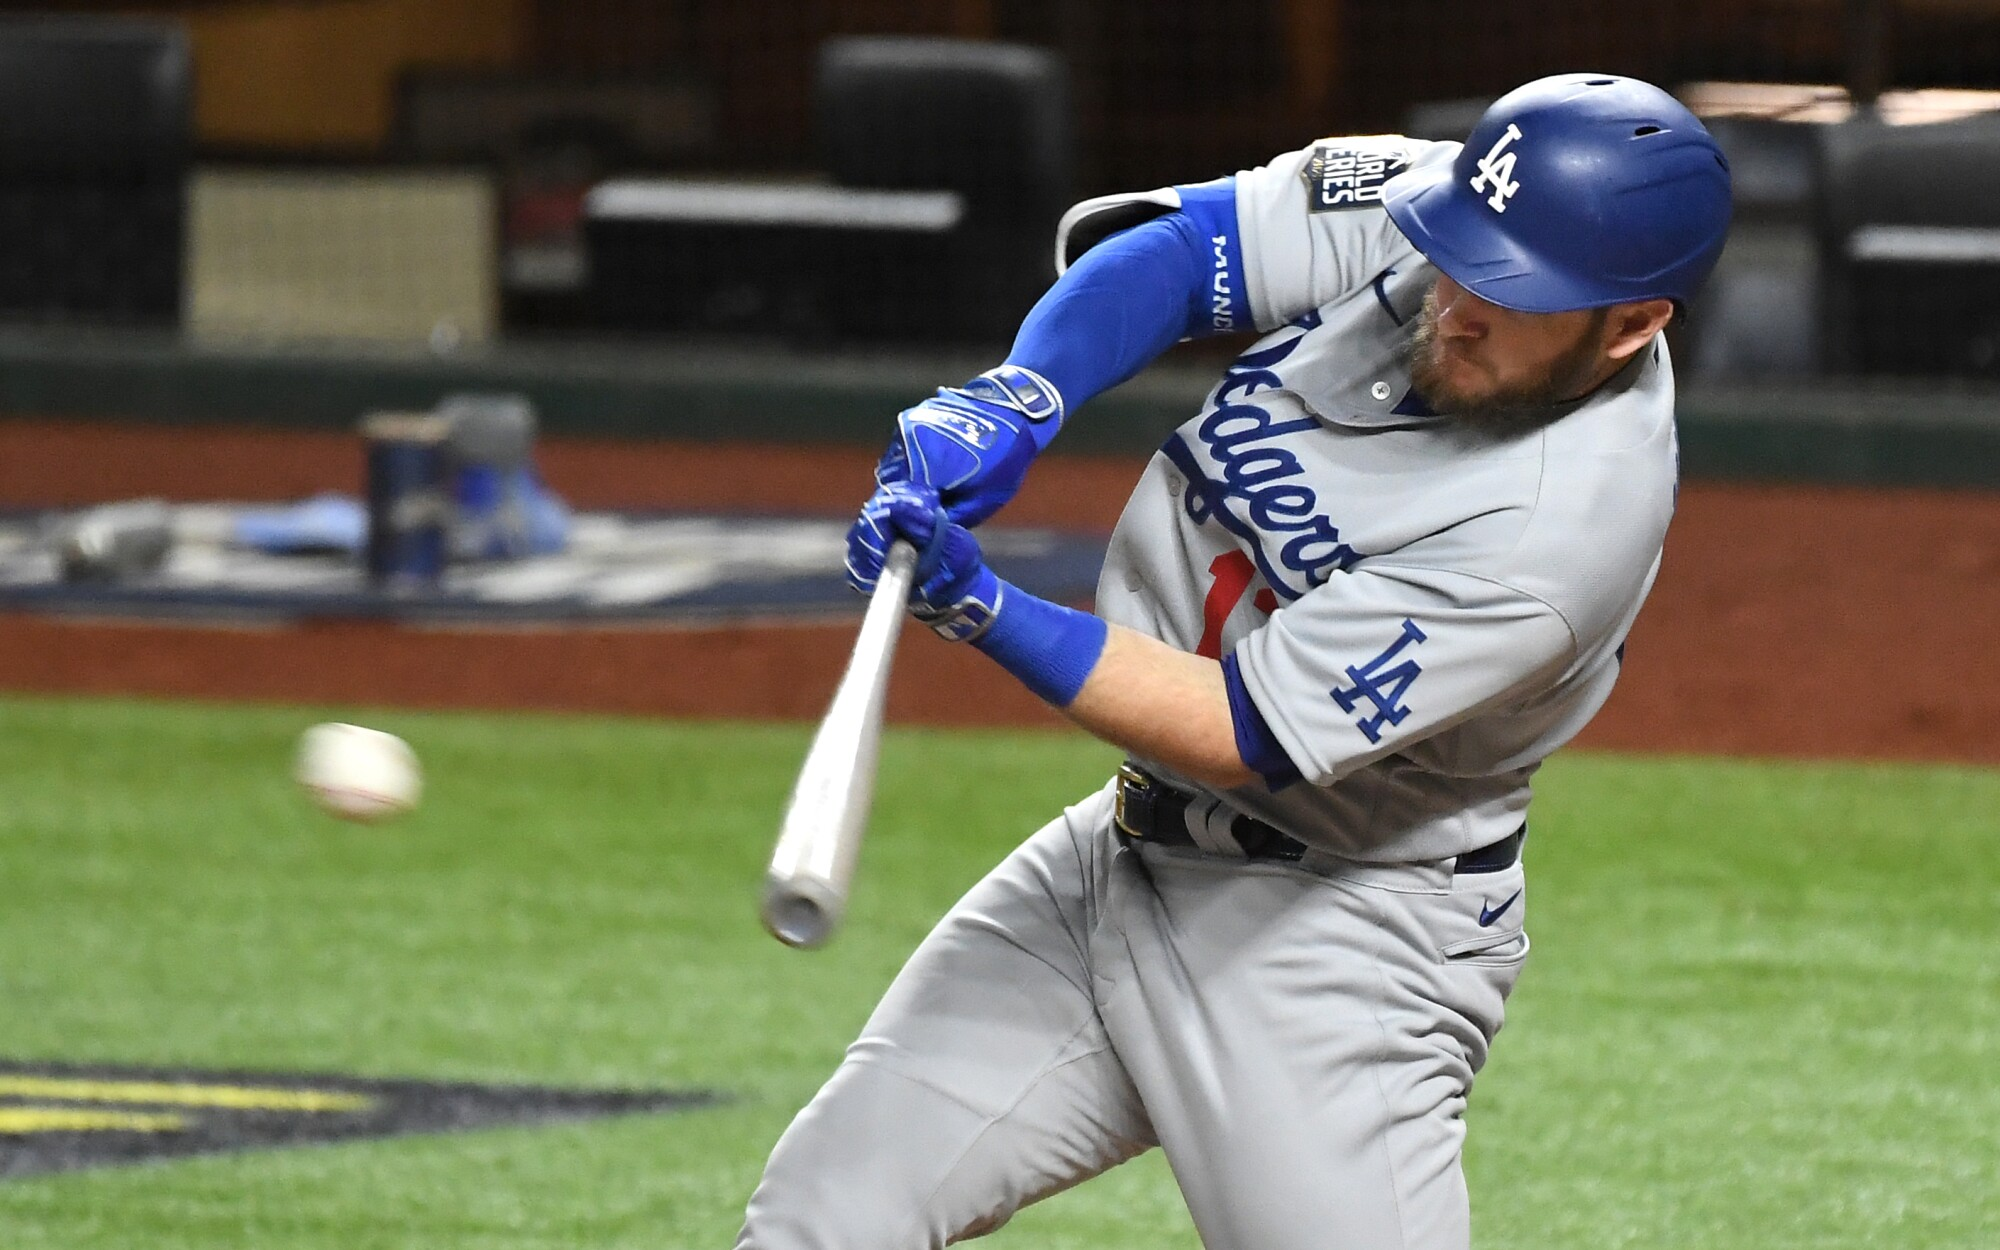 Dodgers first baseman Max Muncy hits a two-run single against the Rays.